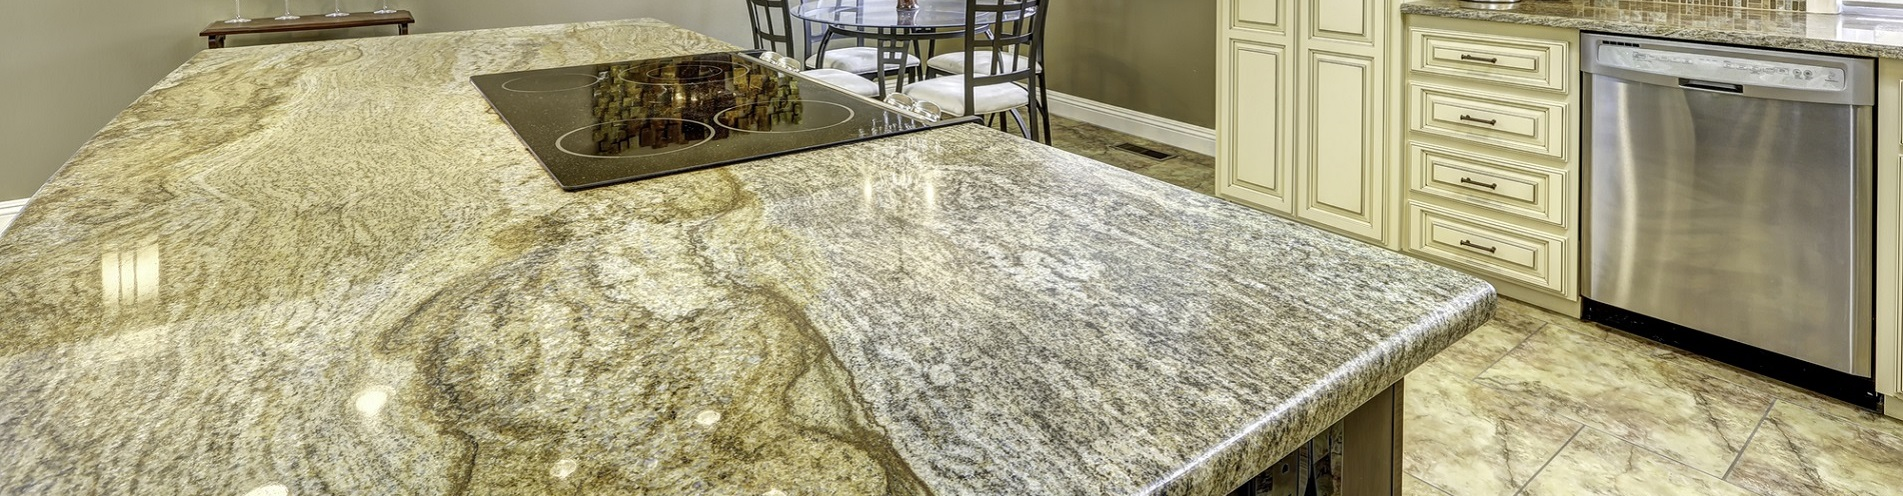 granite countertops oregon installed img need in do sealing countertop you eugene